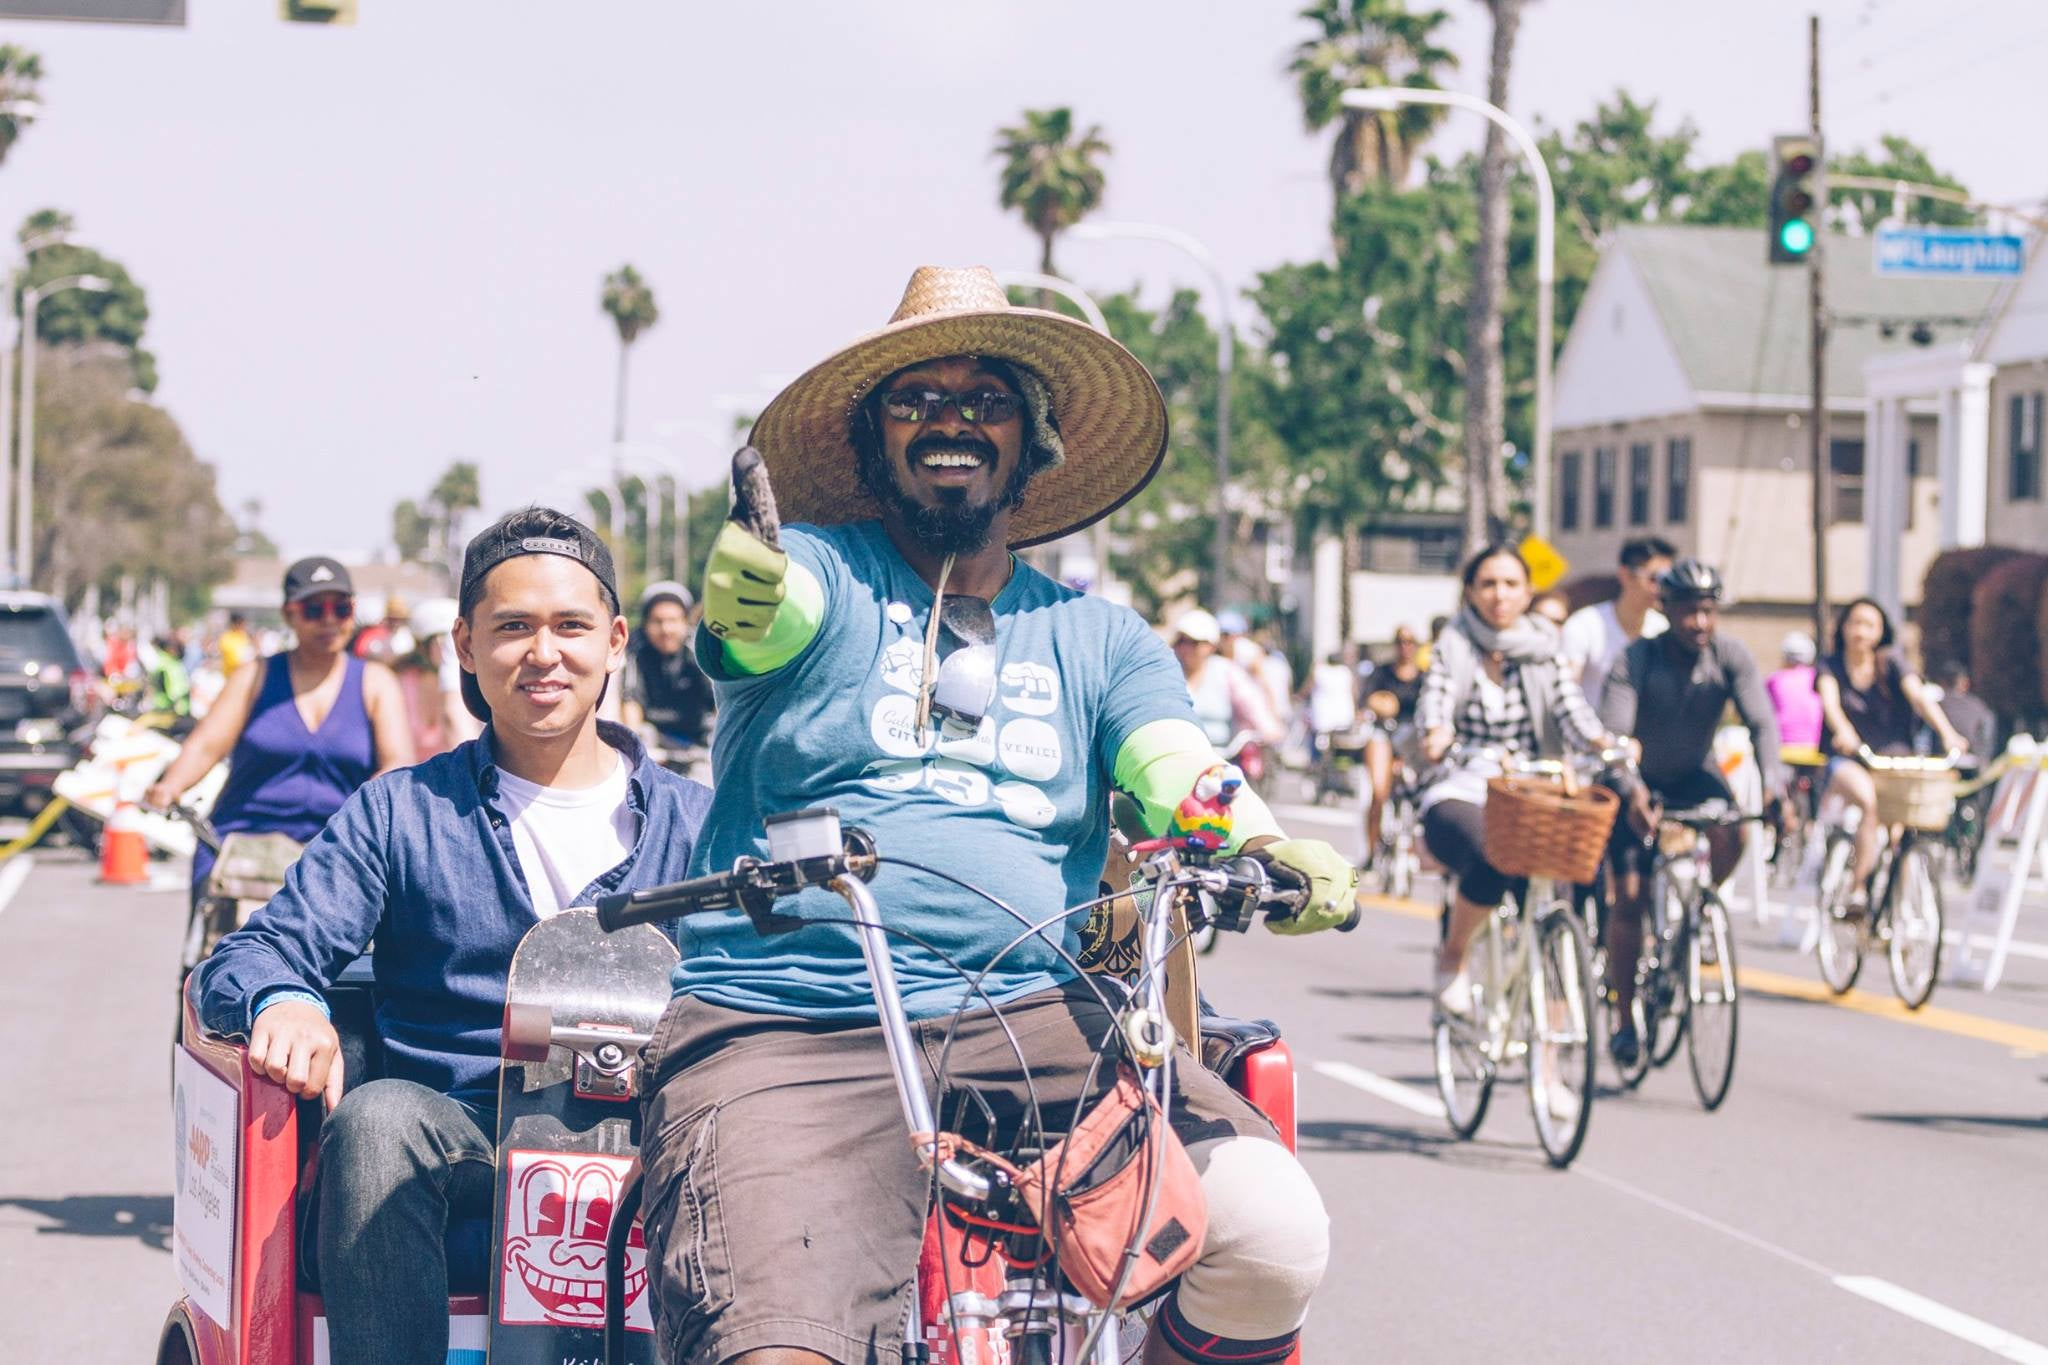 Riding the free Pedicab at CicLAvia in Culver City